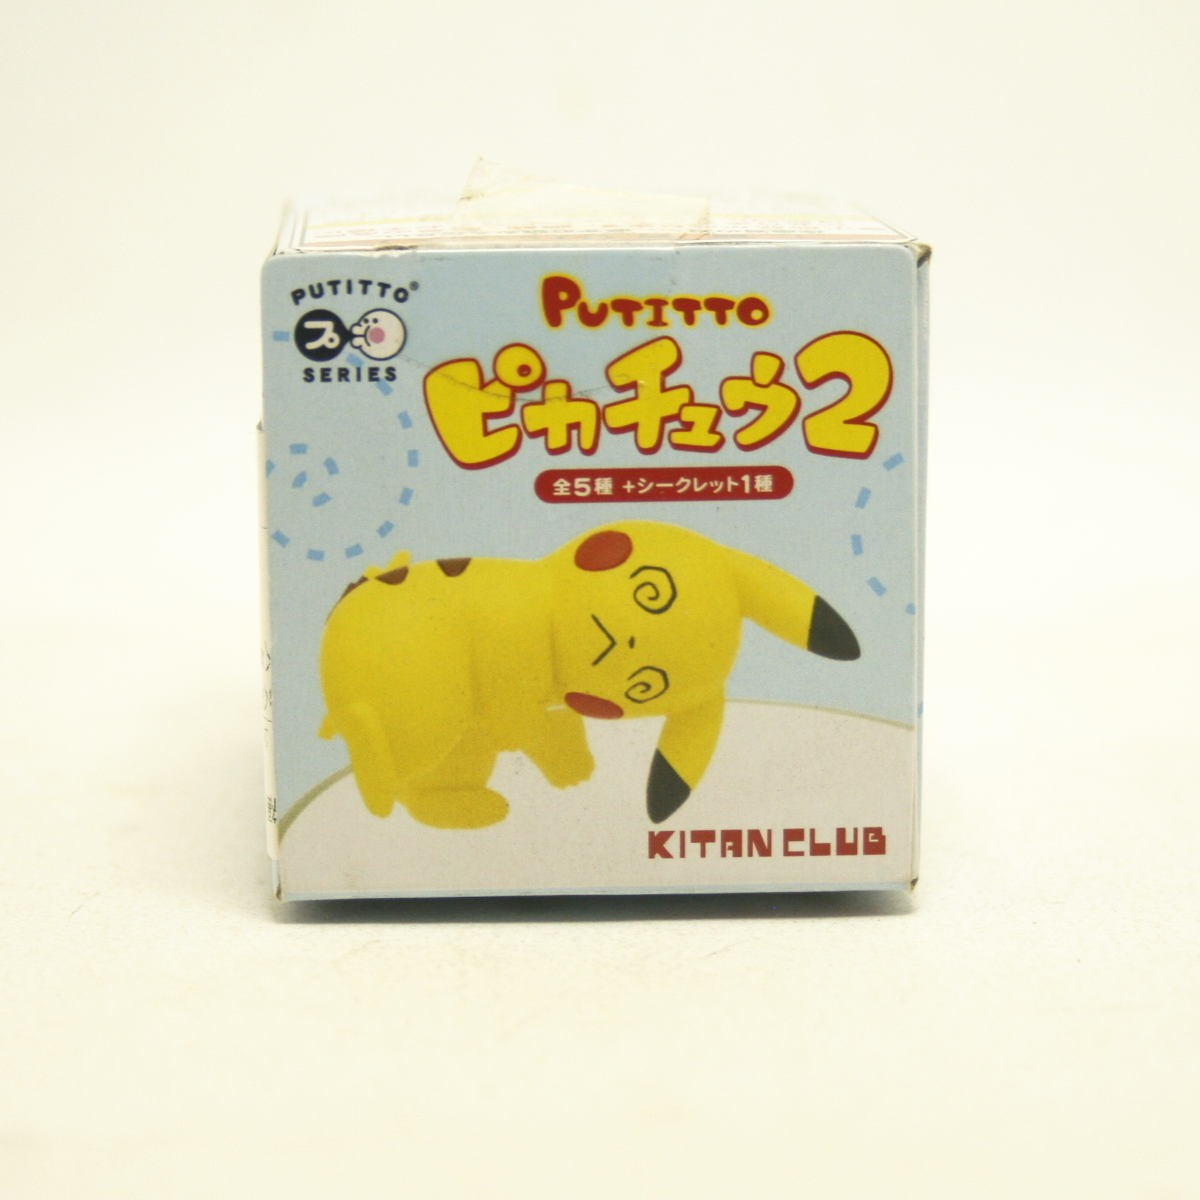 Pokemon Mini Figure Pikachuu Putitto - Guruguru